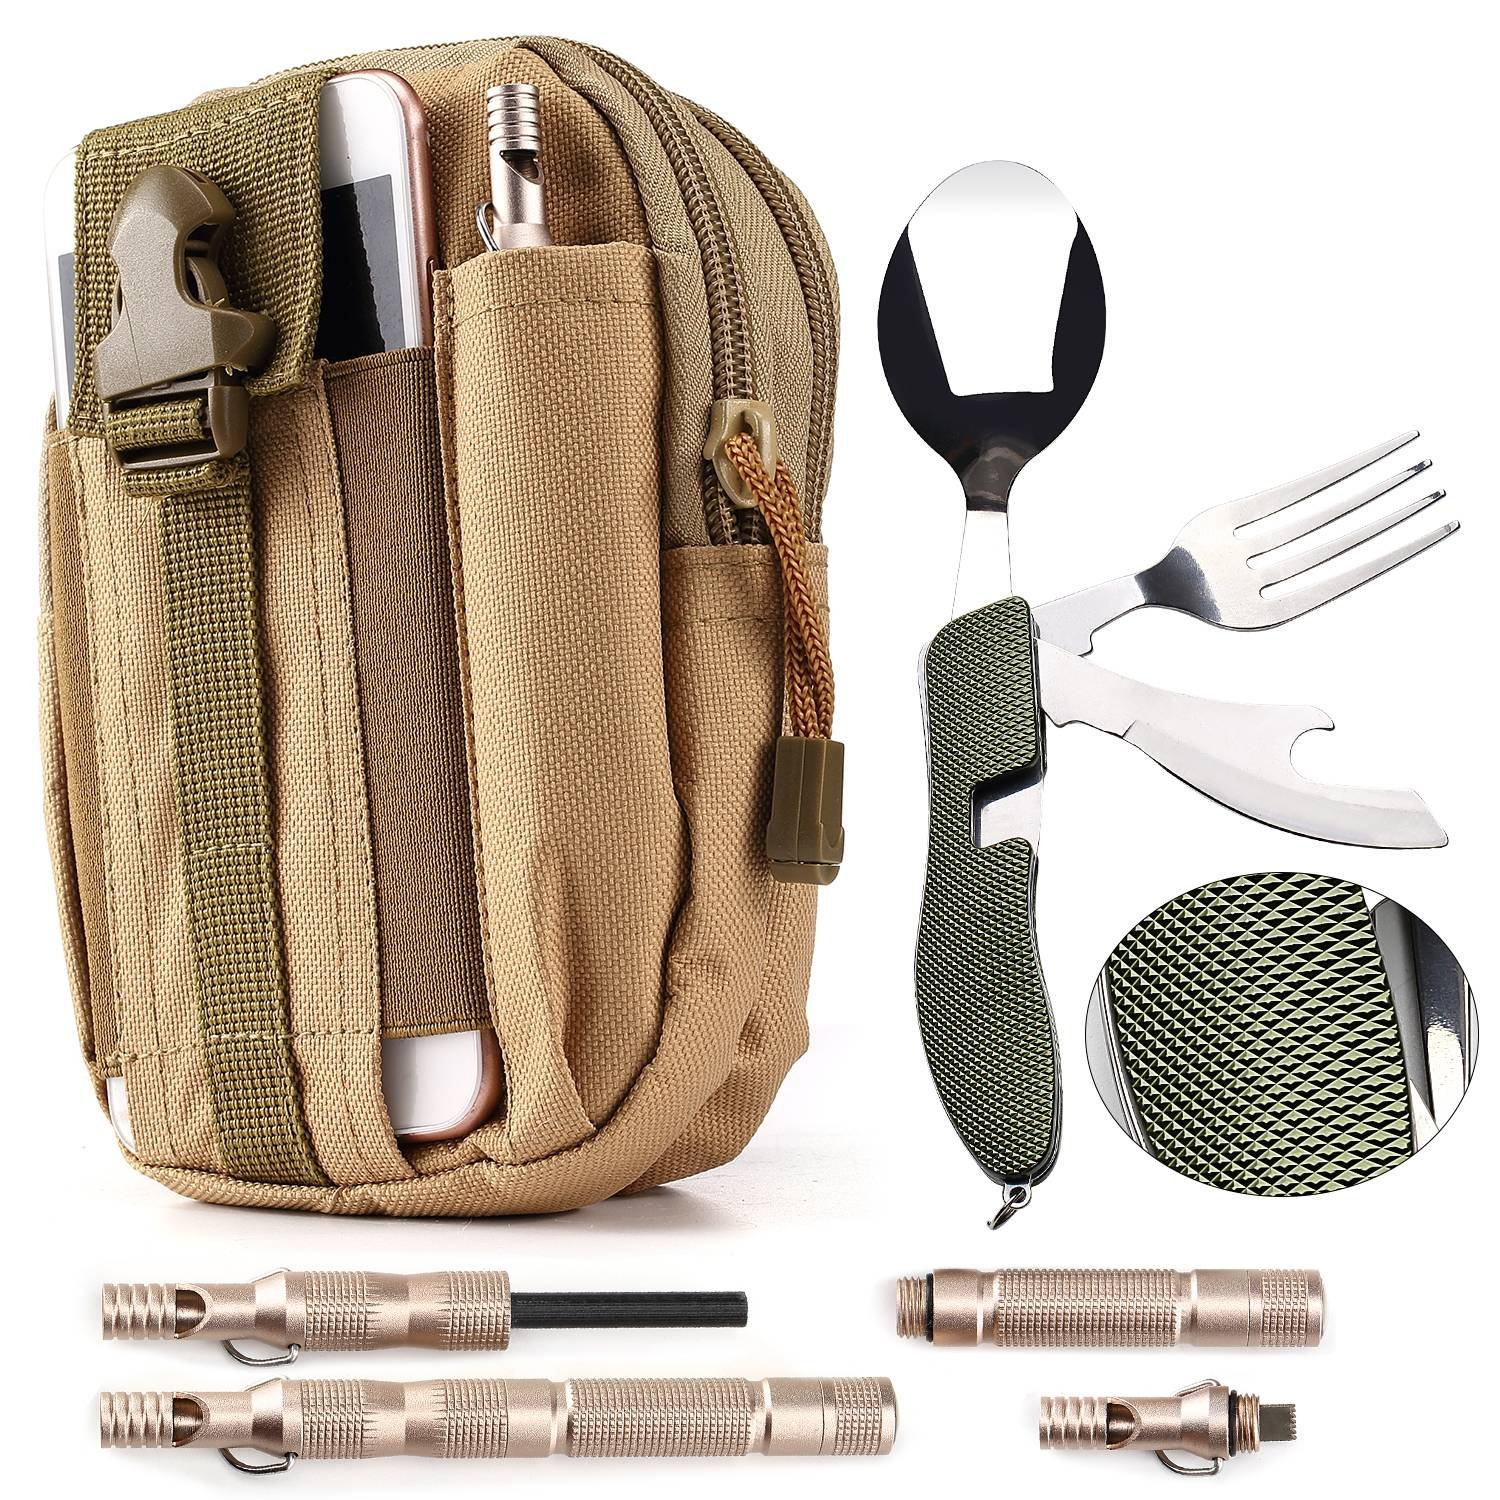 Camping / Survival Kit - Military Canvas Pouch with Phone Slot (1) + Folding Utensils (1) + Emergency Magnesium Survival Fire Starter Flint (1)